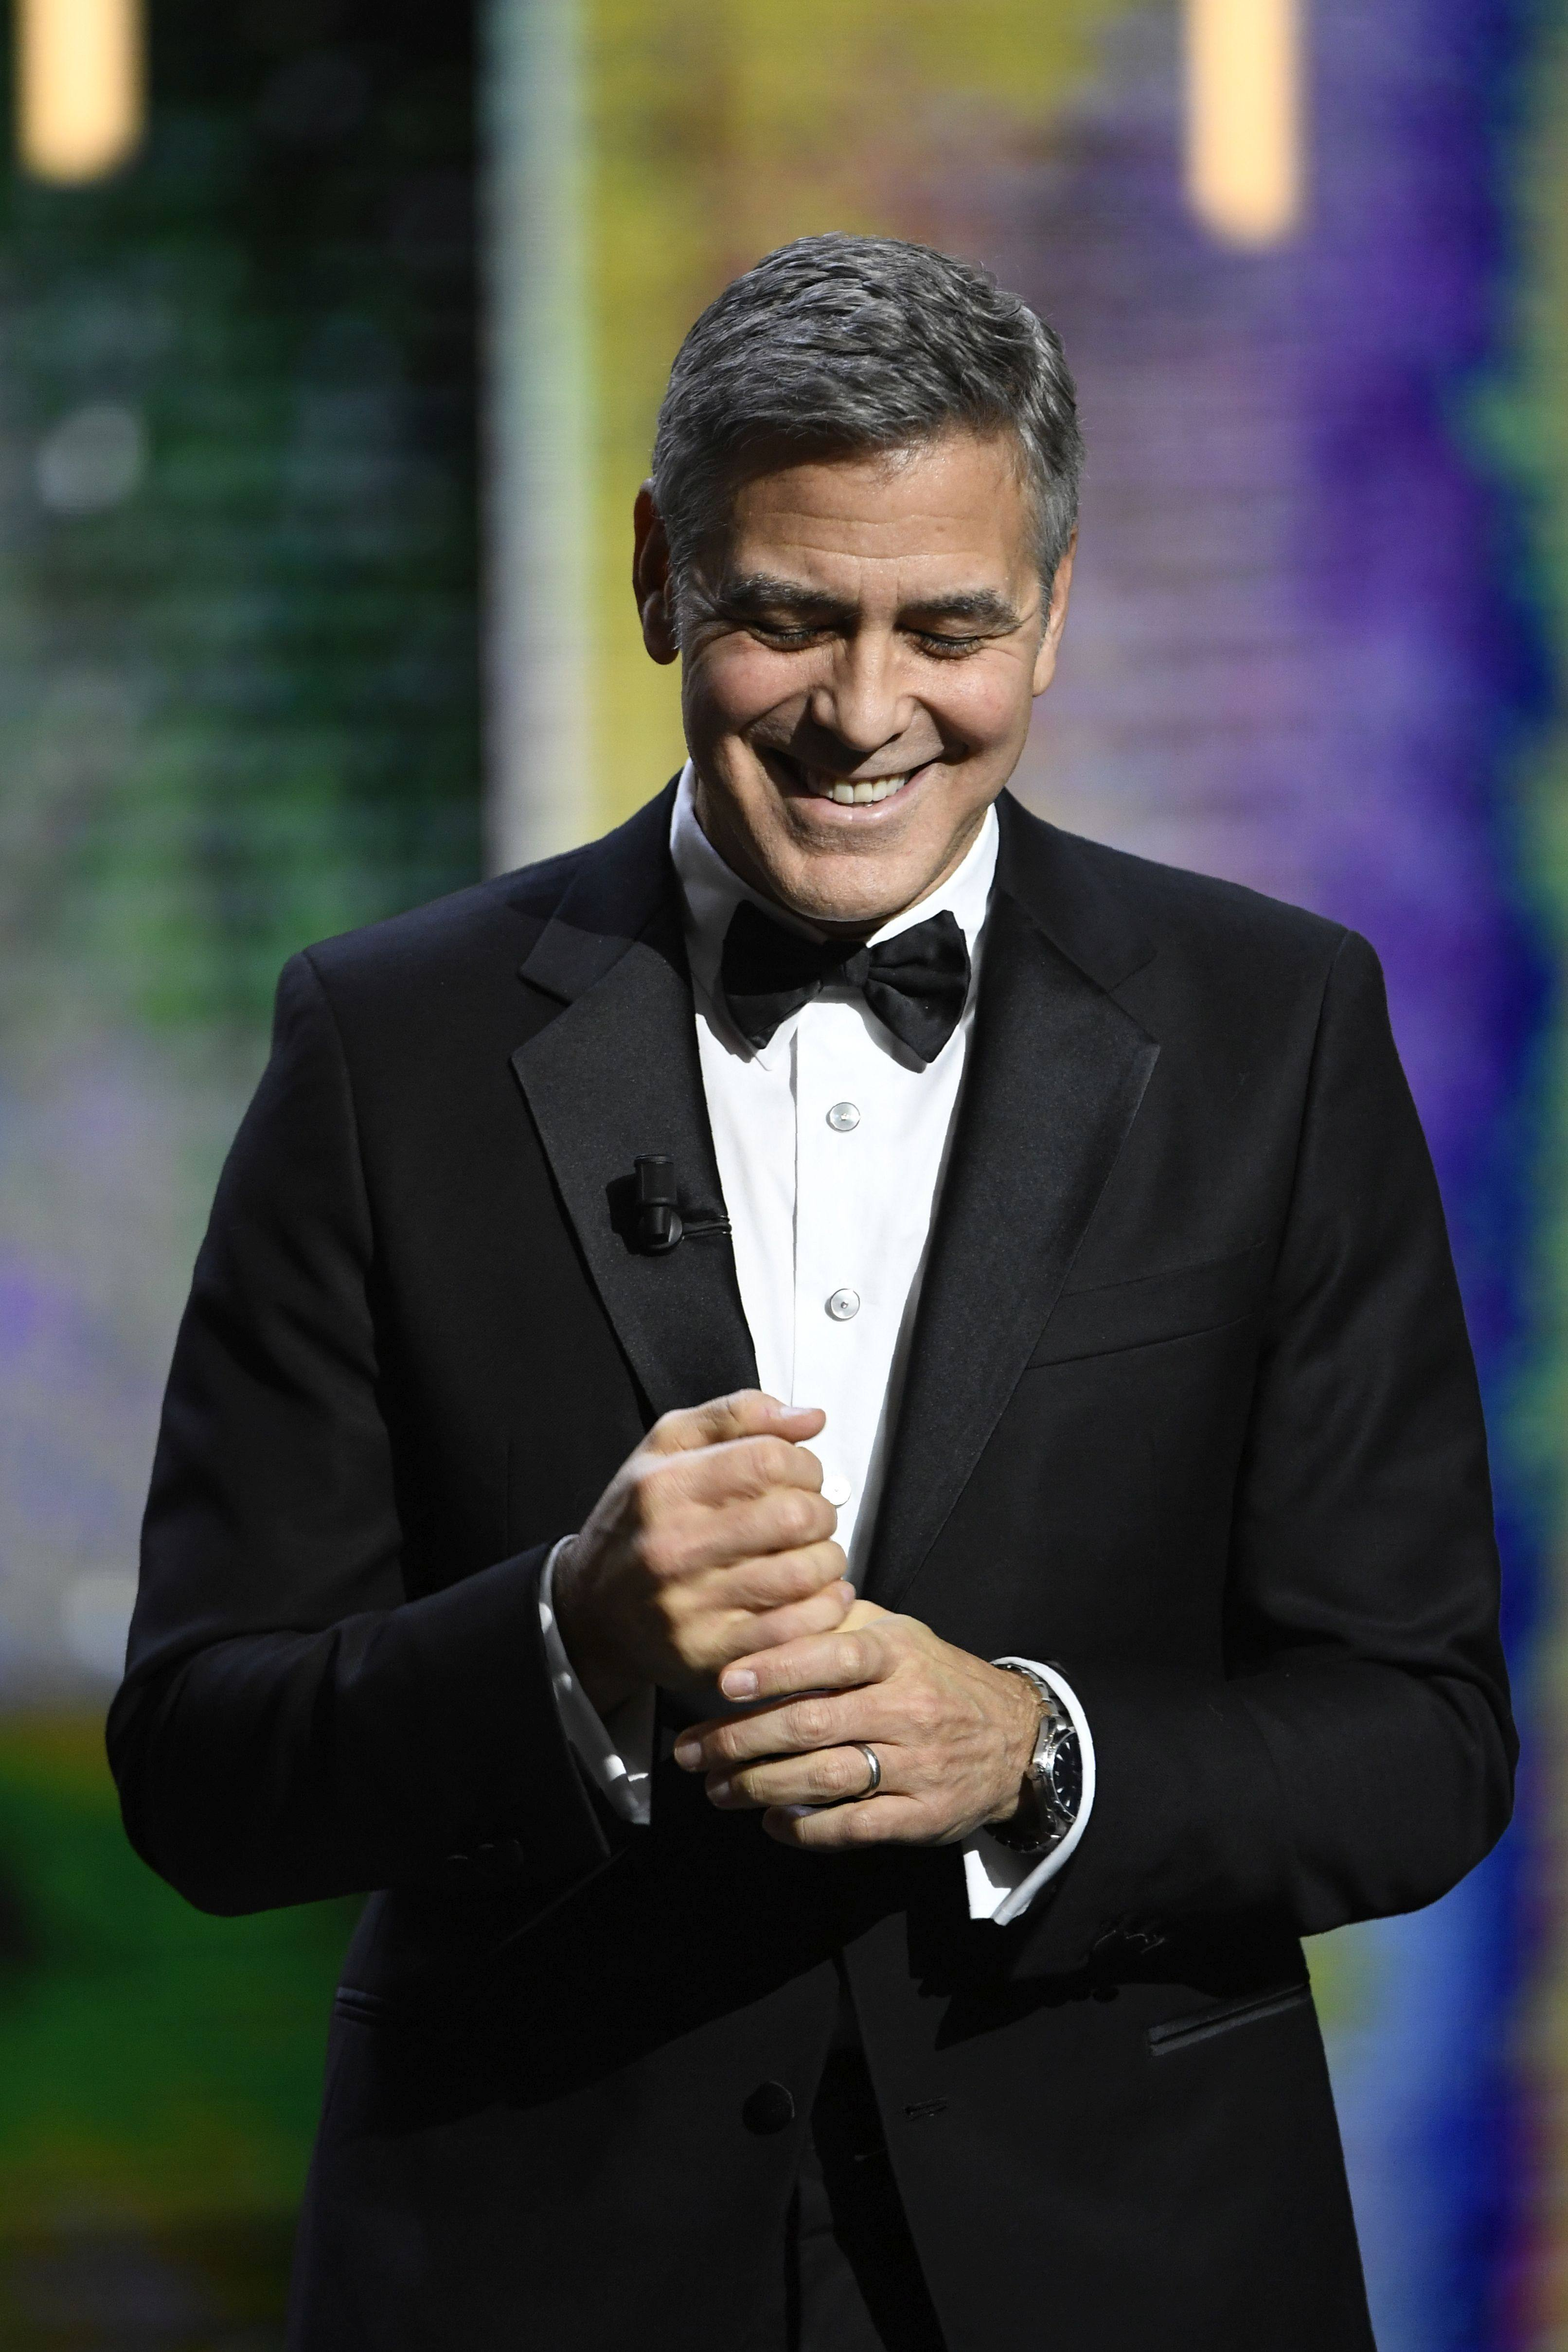 US actor George Clooney arrives on stage to receive an honorary award during the 42nd edition of the Cesar Ceremony at the Salle Pleyel in Paris on February 24, 2017. / AFP / bertrand GUAY (Photo credit should read BERTRAND GUAY/AFP/Getty Images)